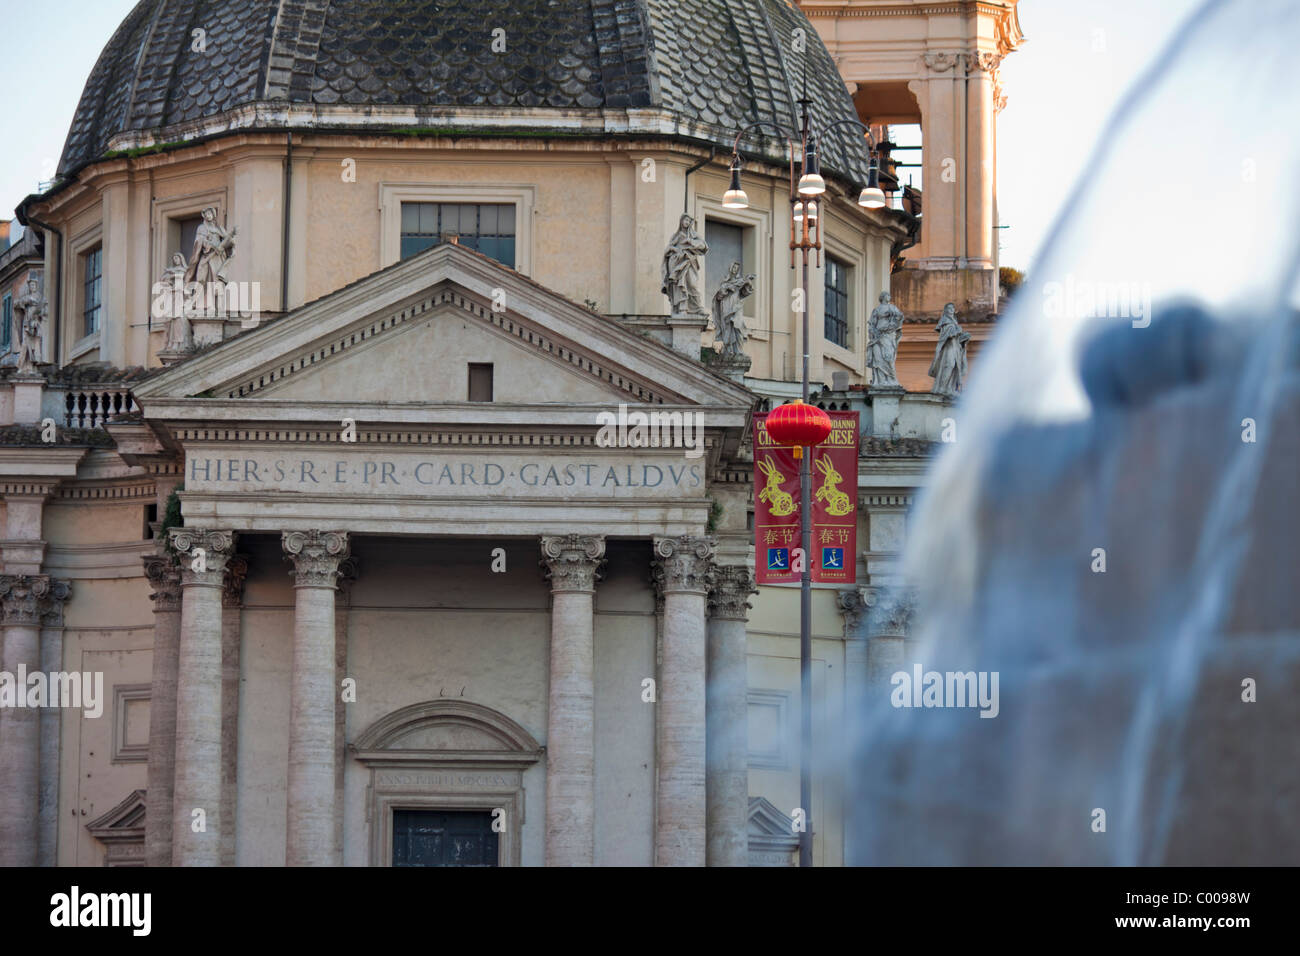 facade of the church of santa maria in montesanto in piazza del popolo rome a banner for chinese lunar new year is visible